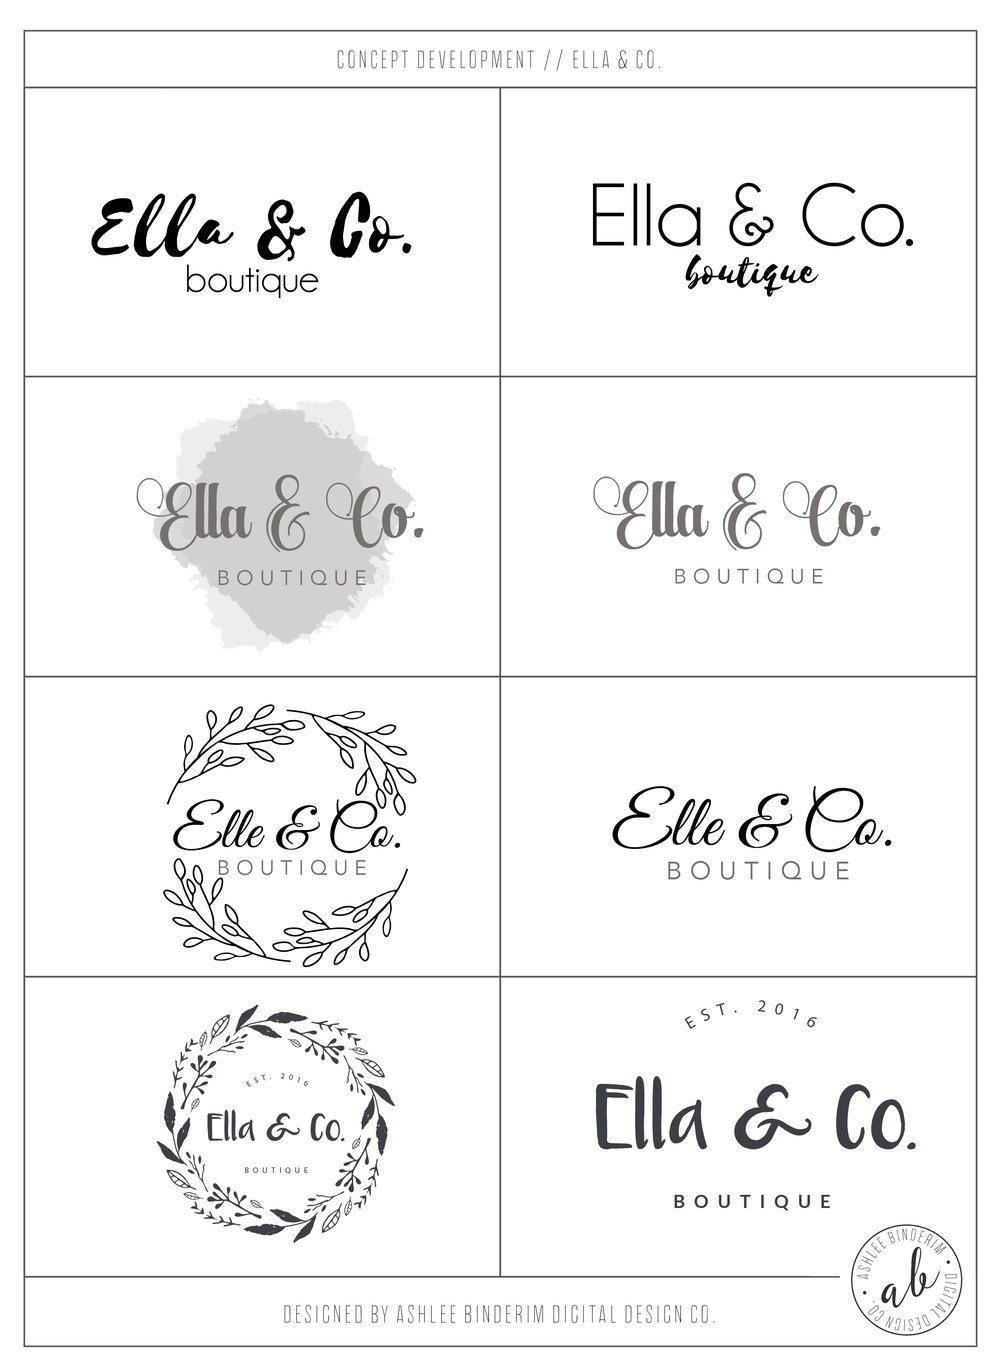 Ella & Co. Concept Development